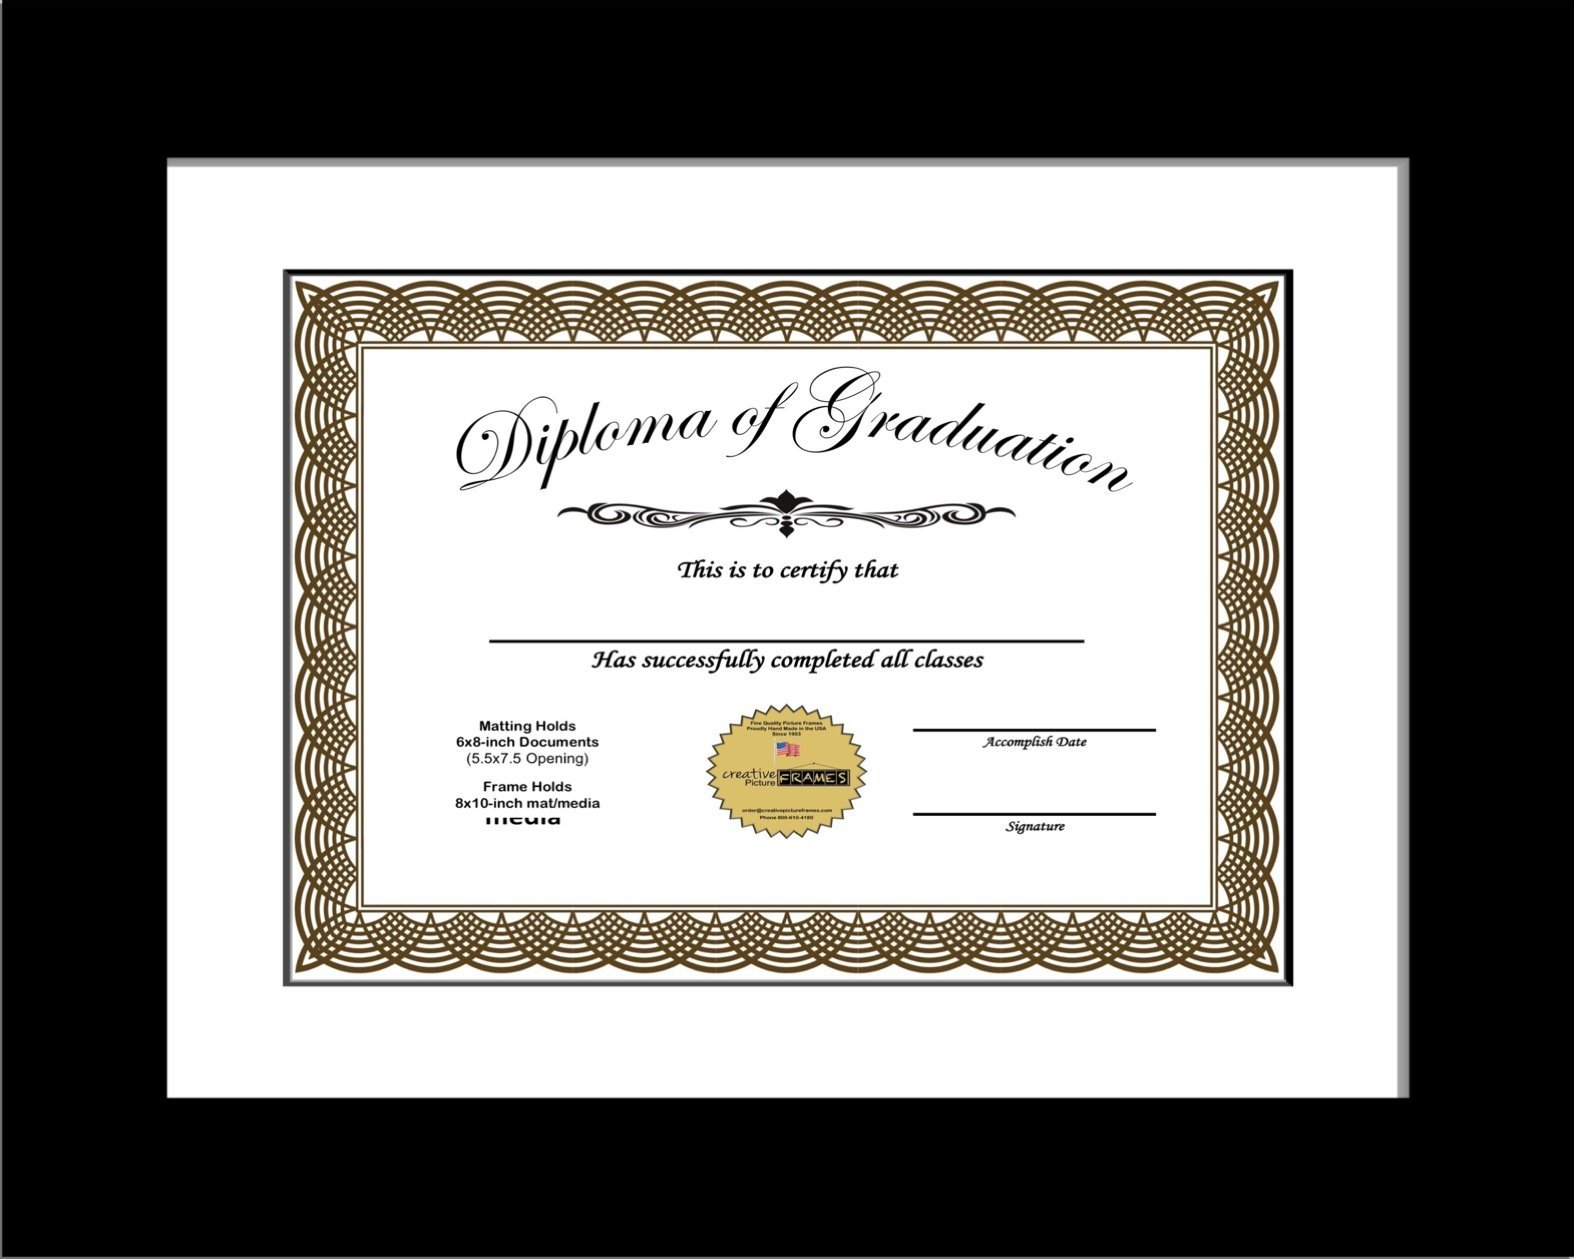 CreativePF [6x8-1-8x10bk-w] Black Diploma Frame with White Matting | Holds 6x8-inch Documents with Stand and Wall Hanger